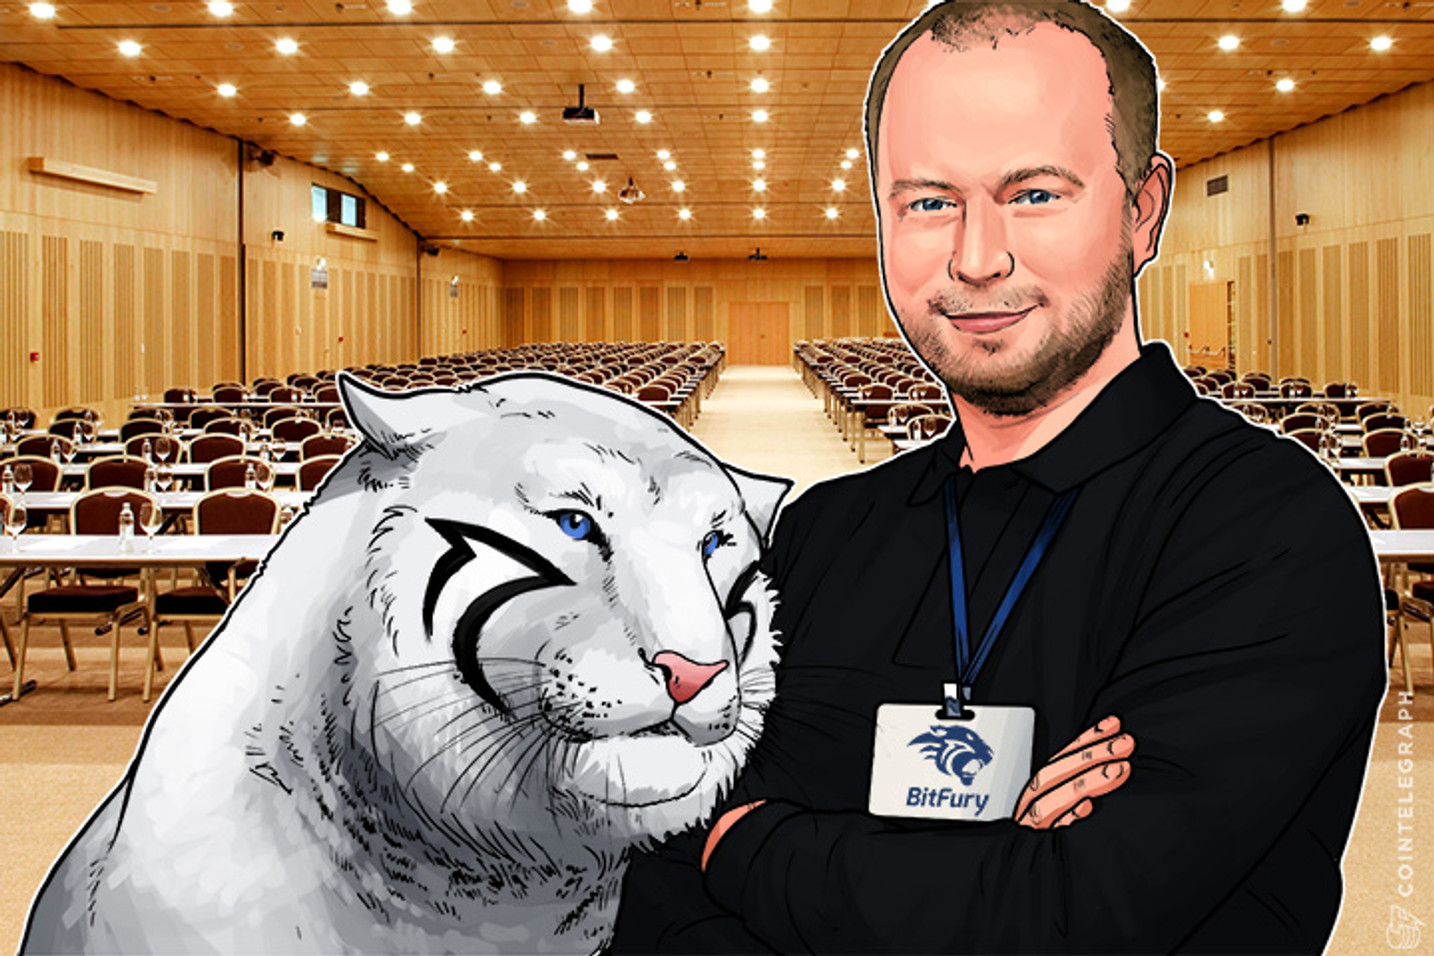 Exclusive Interview with BitFury CEO: Bitcoin Mining, Blockchain, SegWit & More